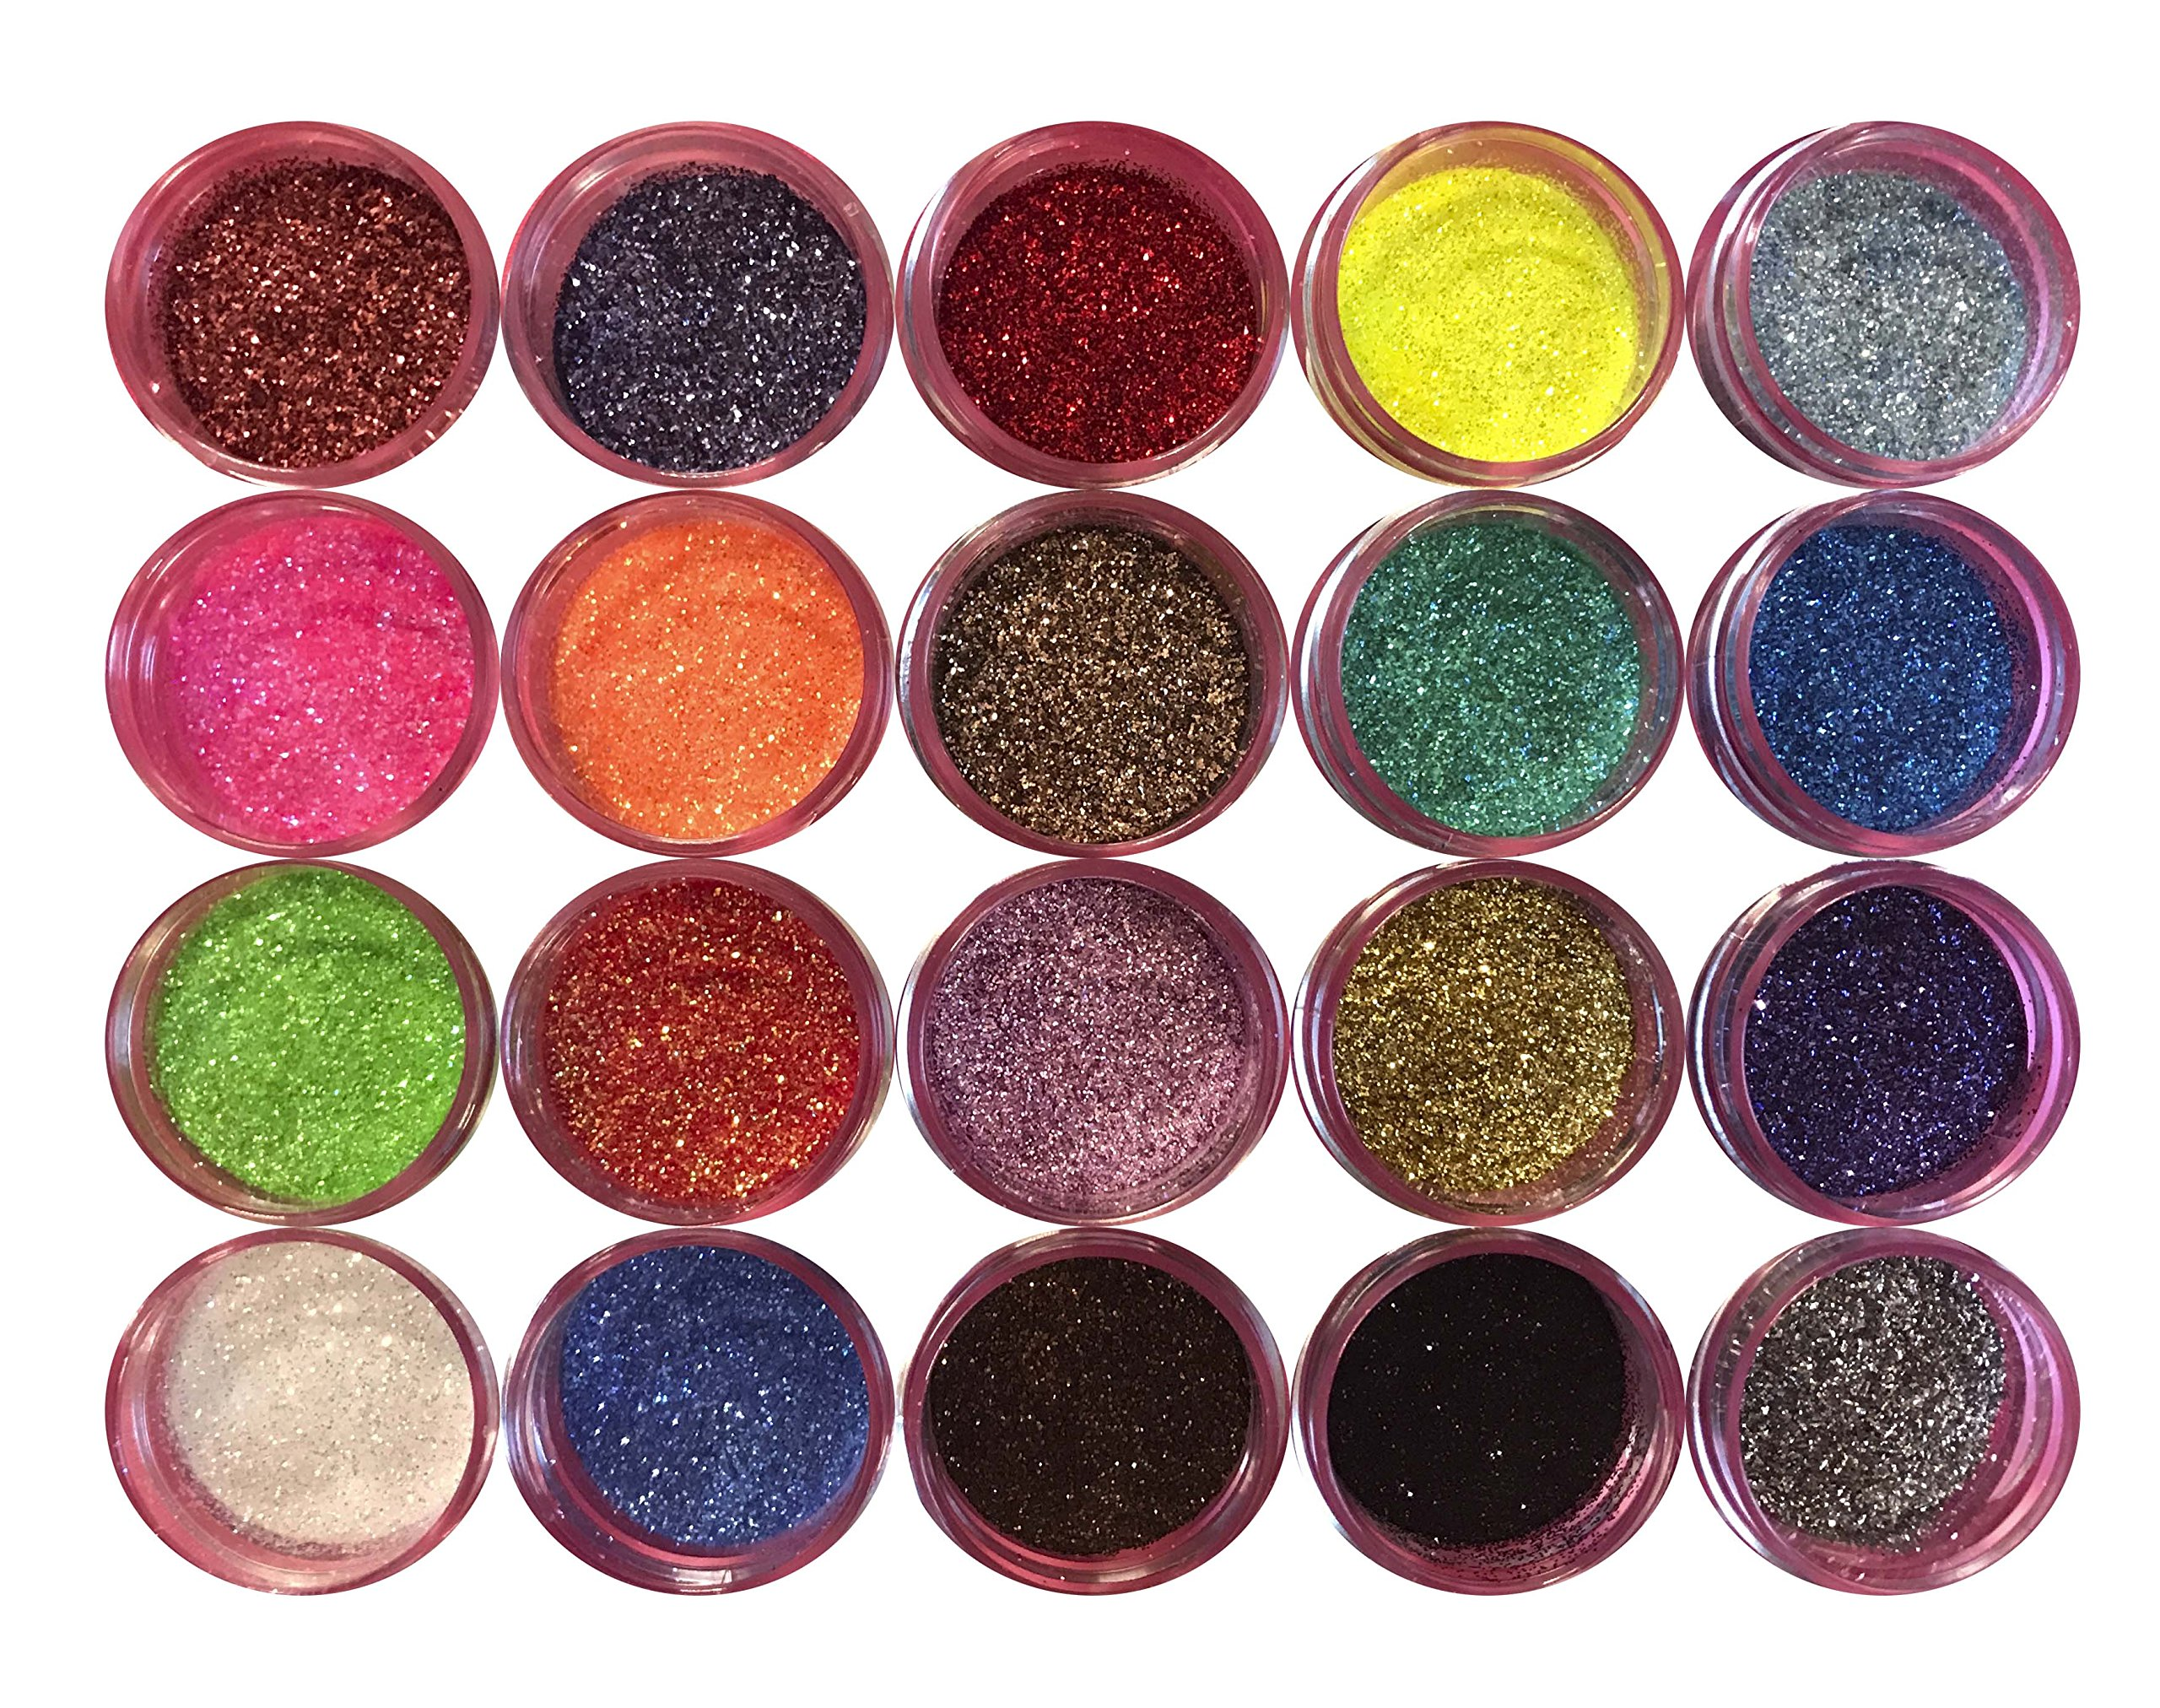 Disco Cake MULTICOLOR SET (20 colors) 5g each container, cakes, cupcakes, fondant, decorating, cake pops By Oh! Sweet Art